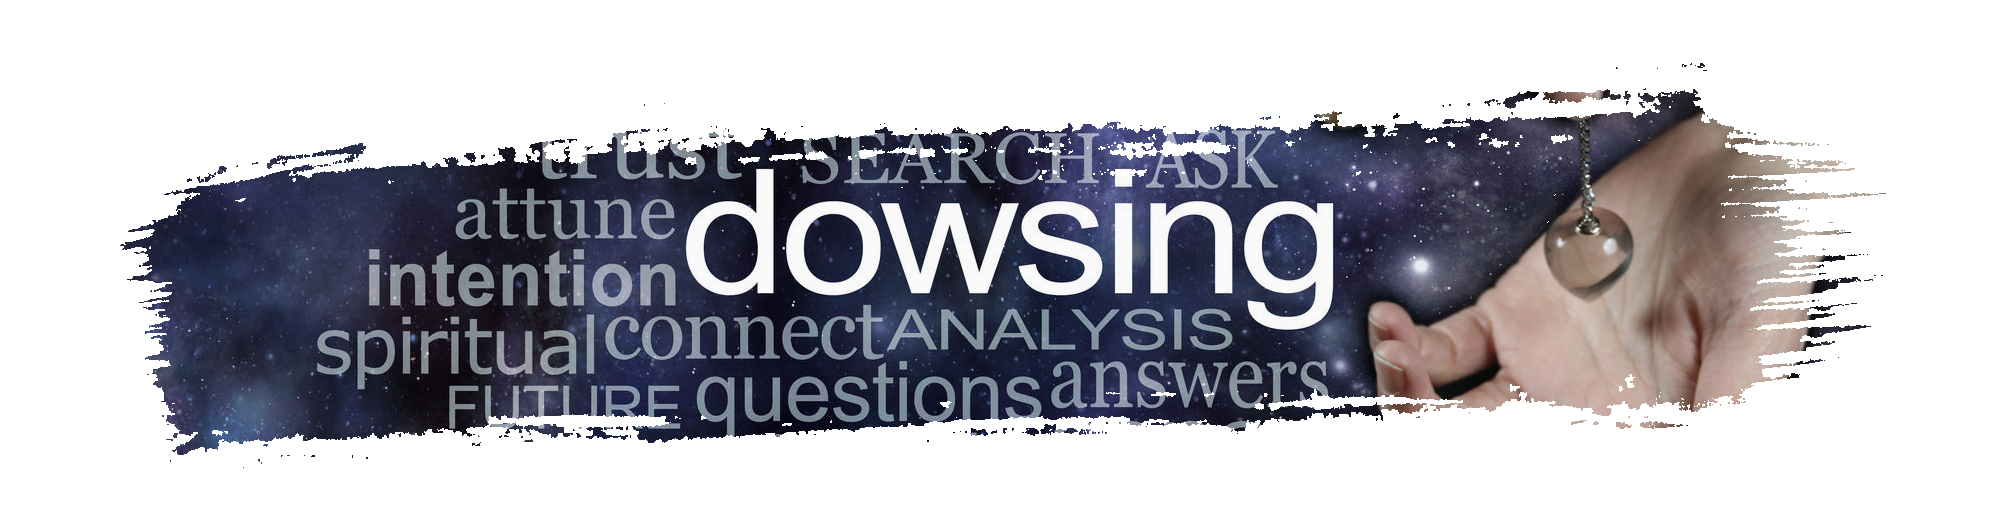 Dowsers | American Society of Dowsers | ASD - American